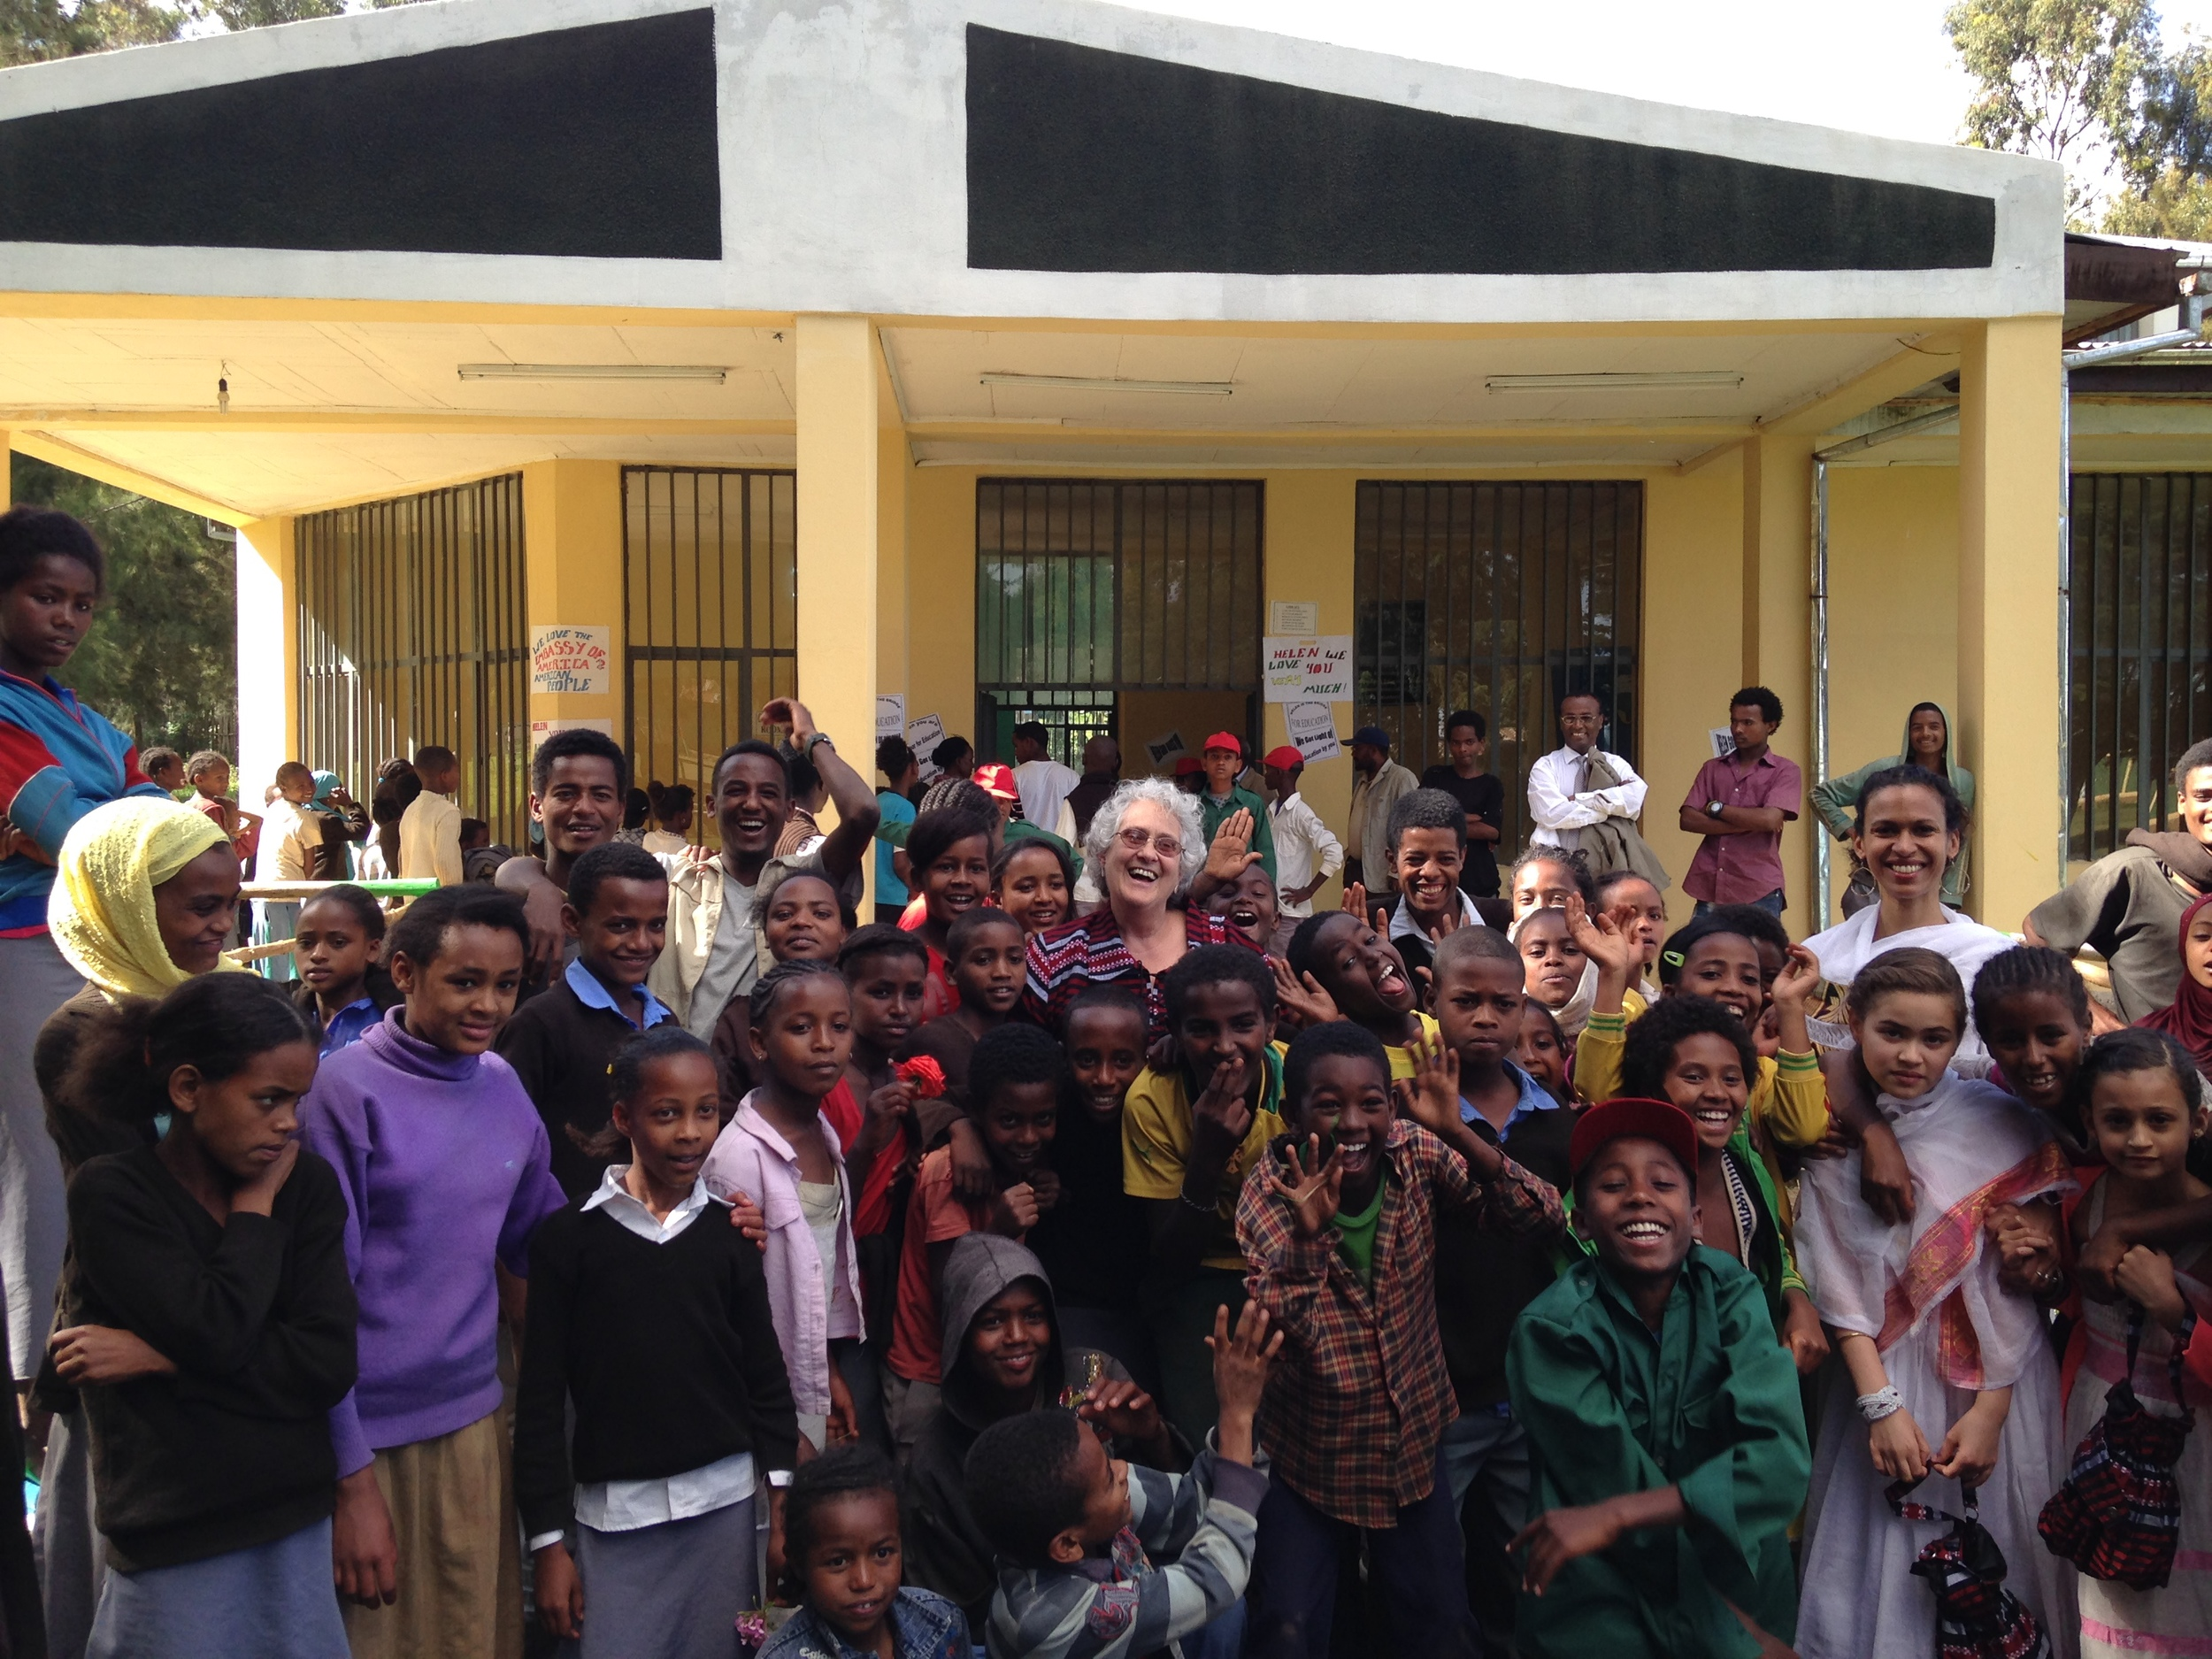 Celebrating the Alemu Woldehanna Community Library in Hosanna, Ethiopia, April 2014.